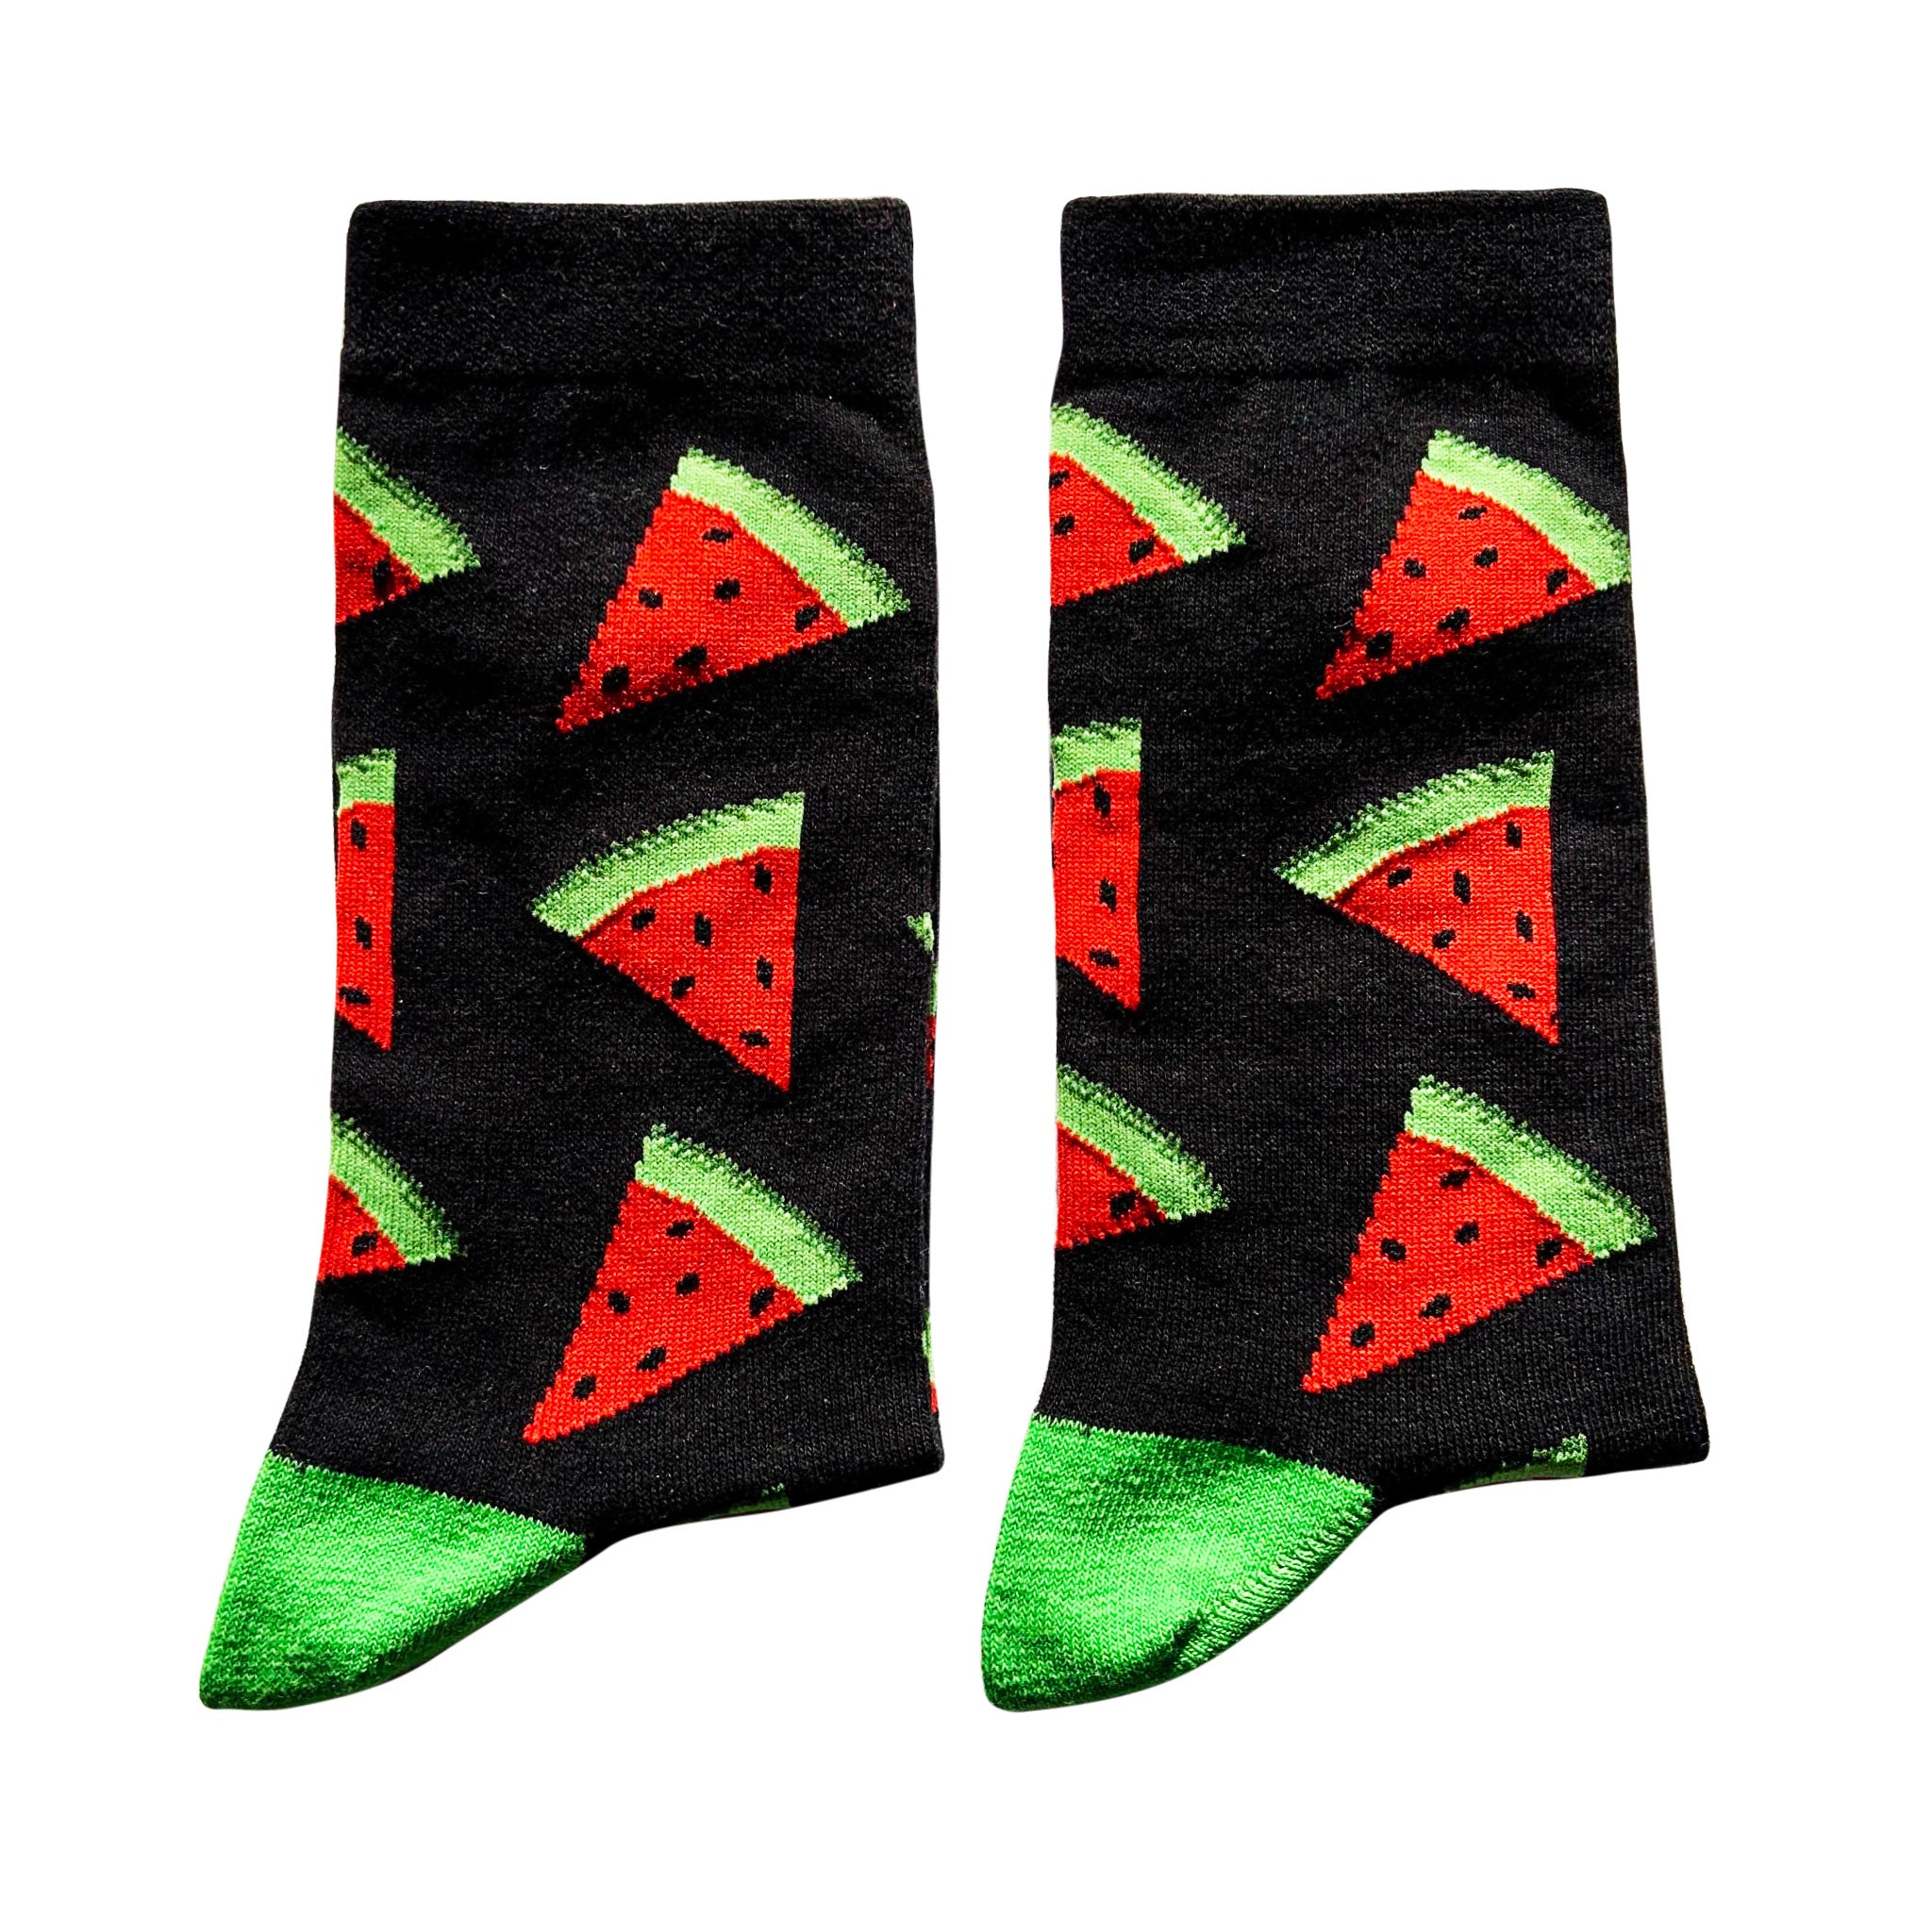 Jolly Soles Black with Watermelon Extra Large